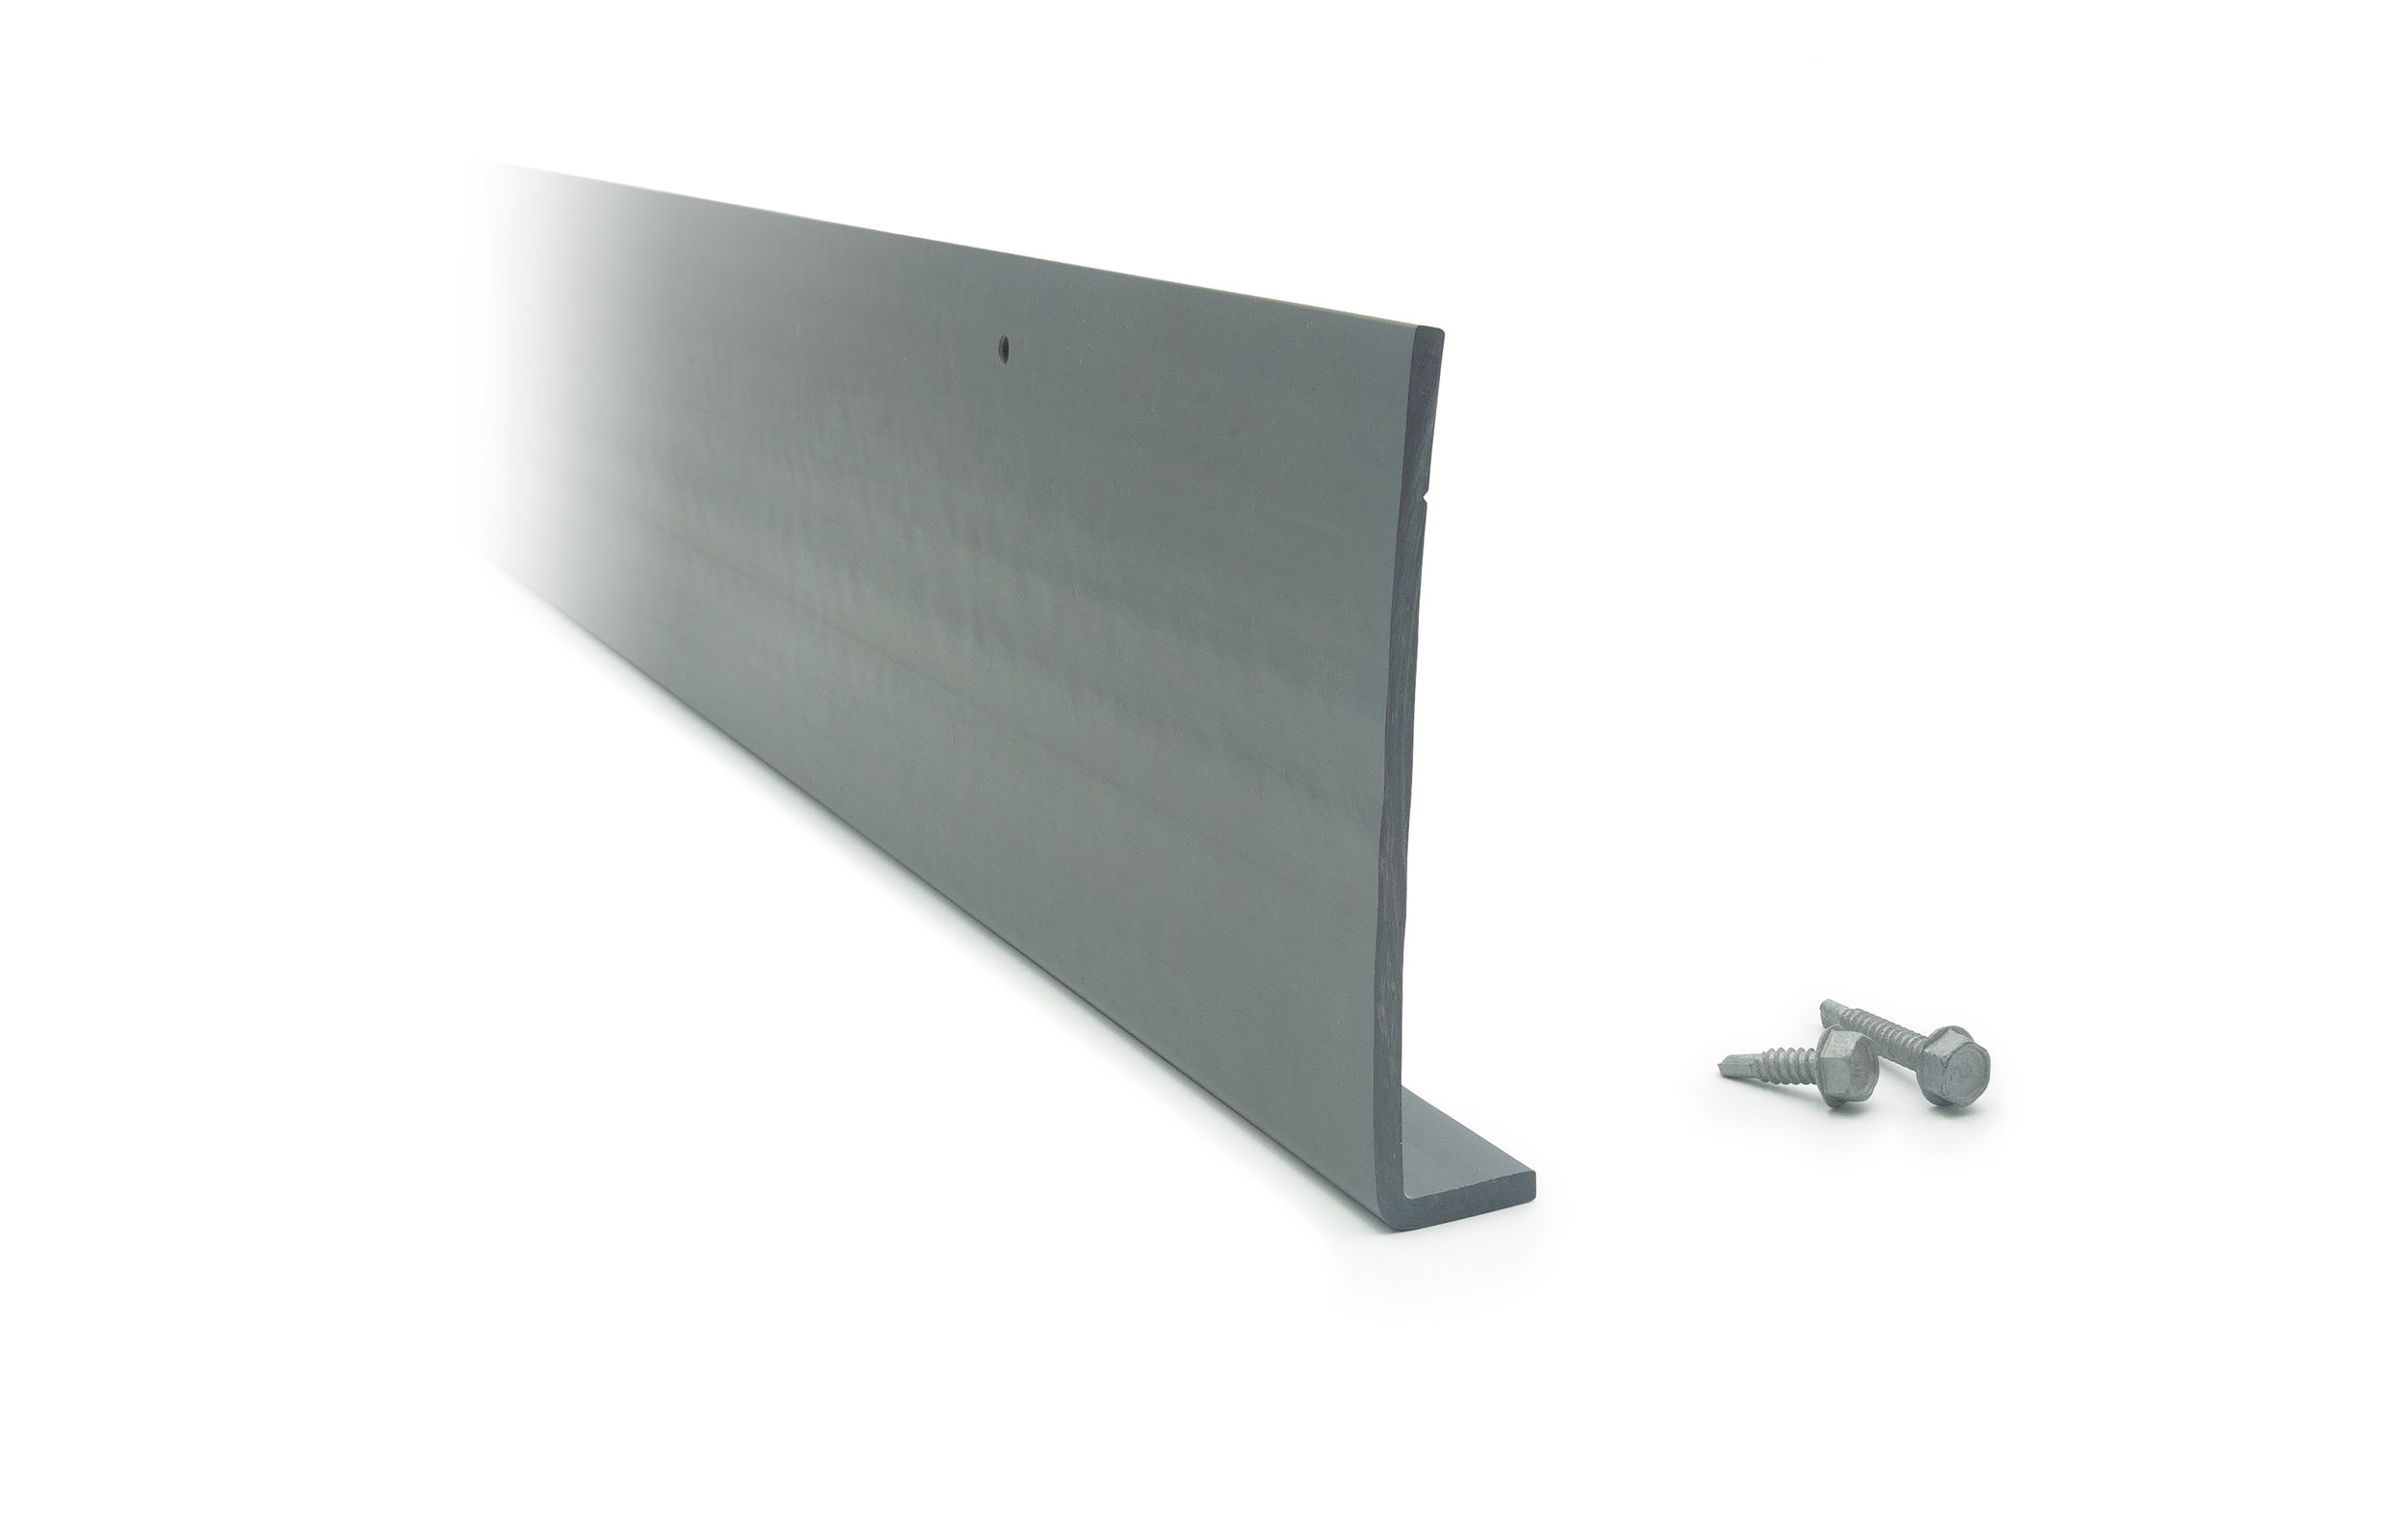 Quick Install Track - Attaches to joist to set pitch for drainageAccommodates for uneven joistsCorrosion-resistant, self-tapping steel screws with 1000-hour salt-spray protective coating (sold separately)Made of durable vinyl material10' lengths